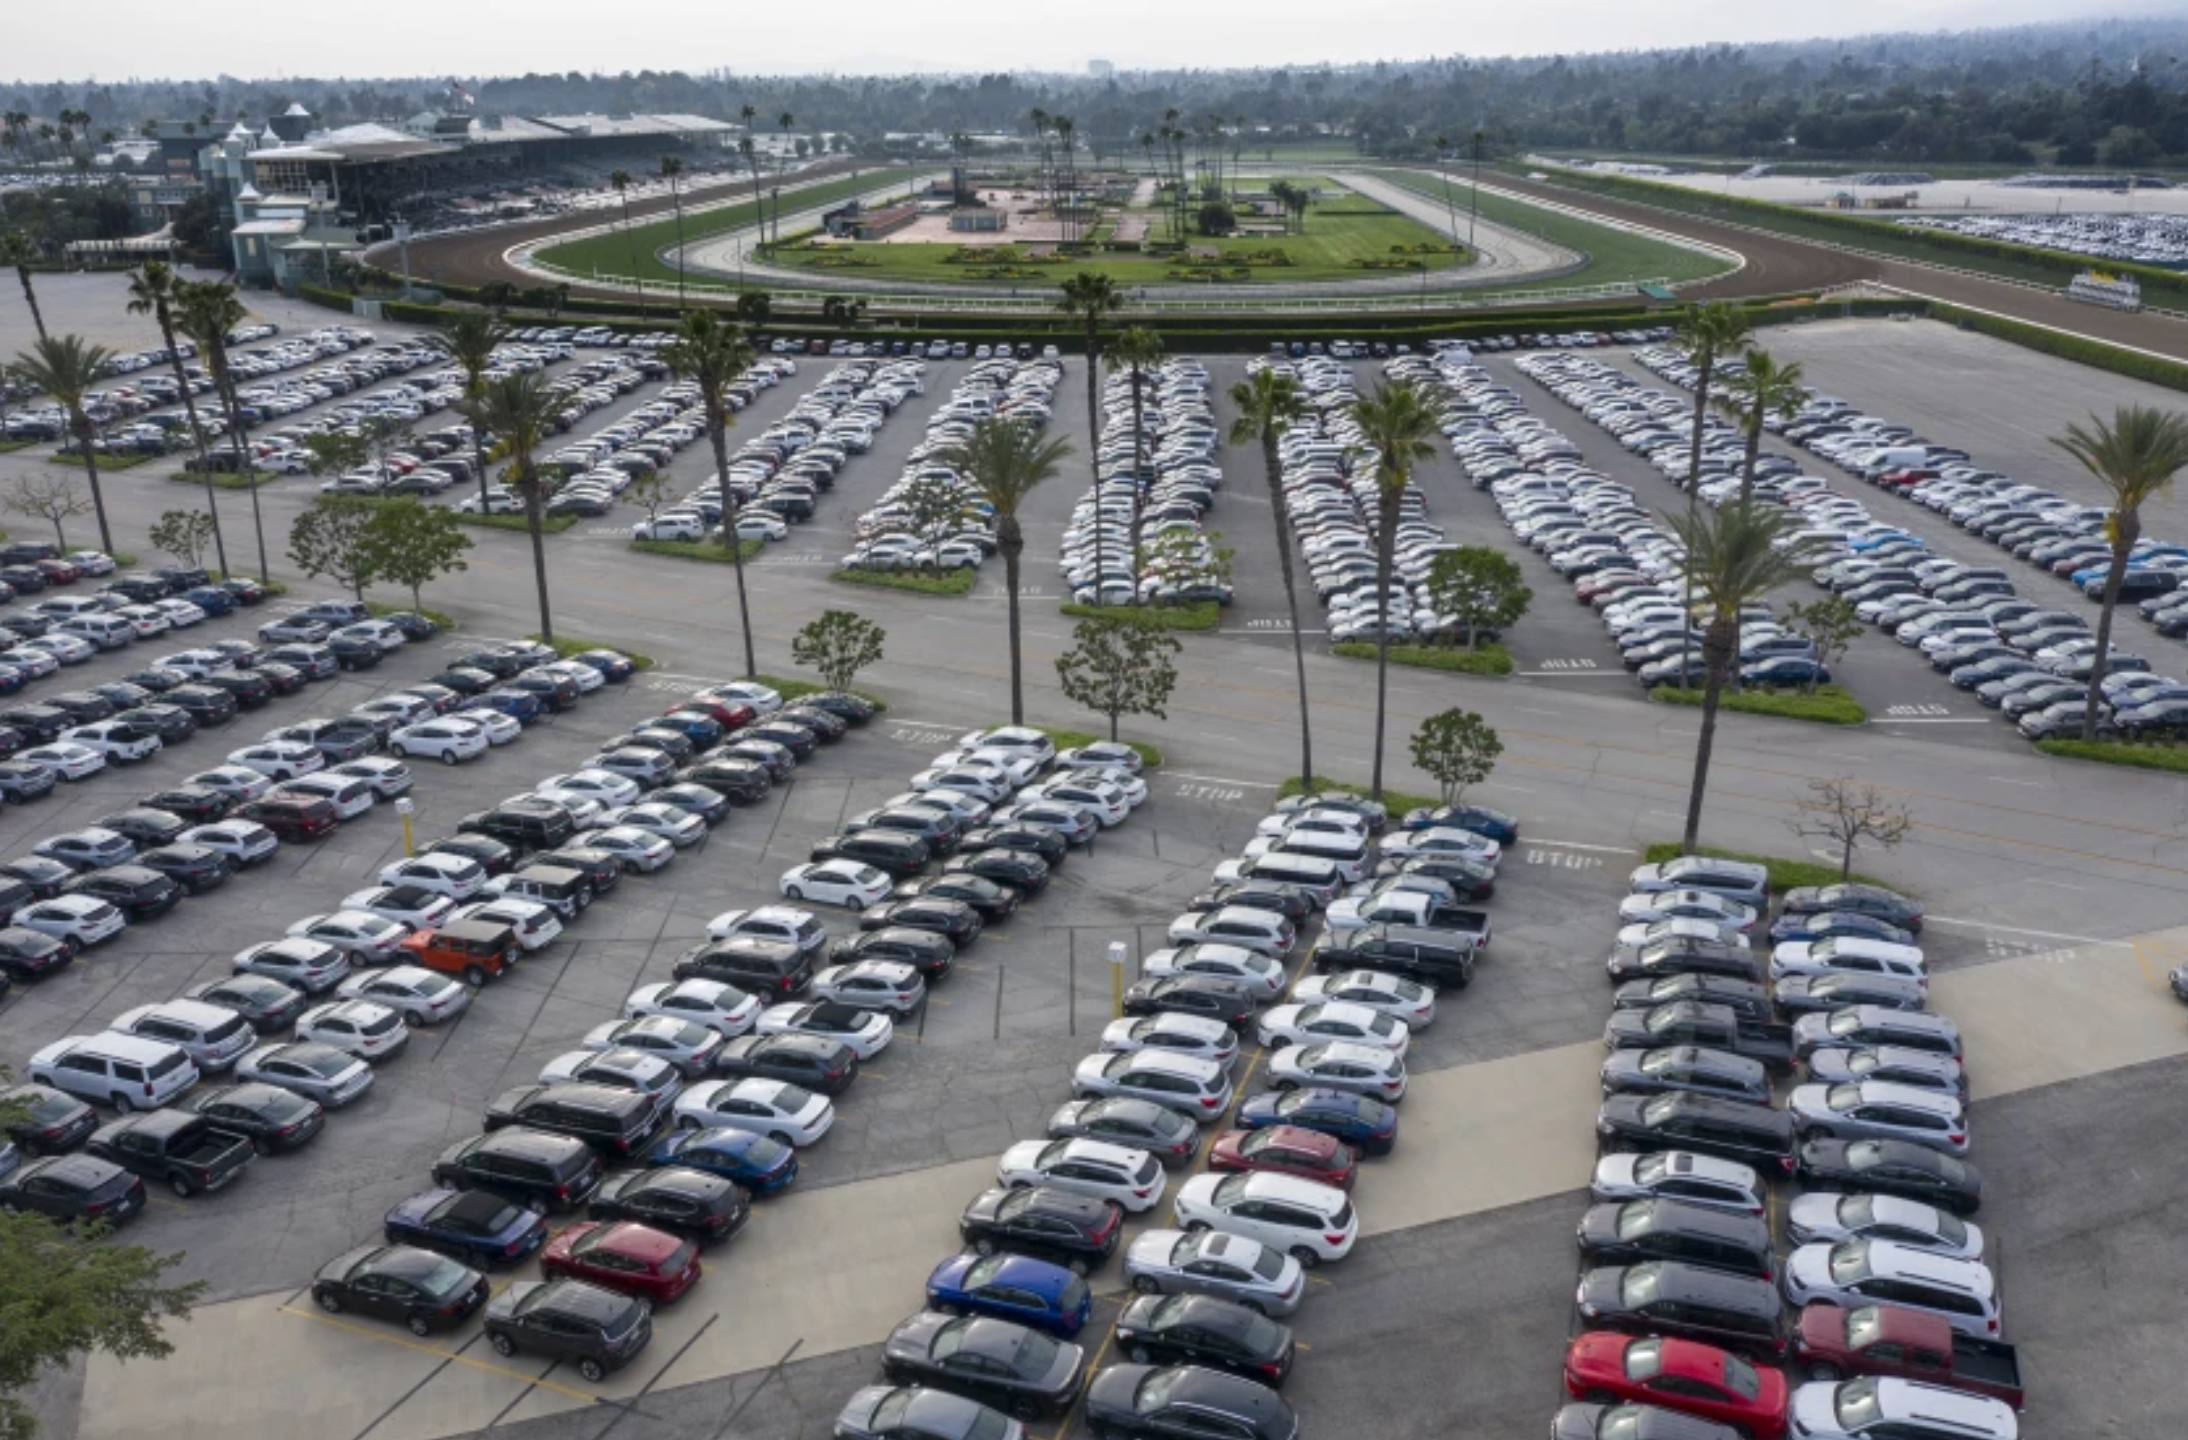 When the pandemic first hit, demand for rental cars plummeted, forcing rental companies to park thousands of cars in lots such as the Santa Anita racetrack parking lot, shown in April 2020. Many of those cars were later sold.(Robert Gauthier / Los Angeles Times)